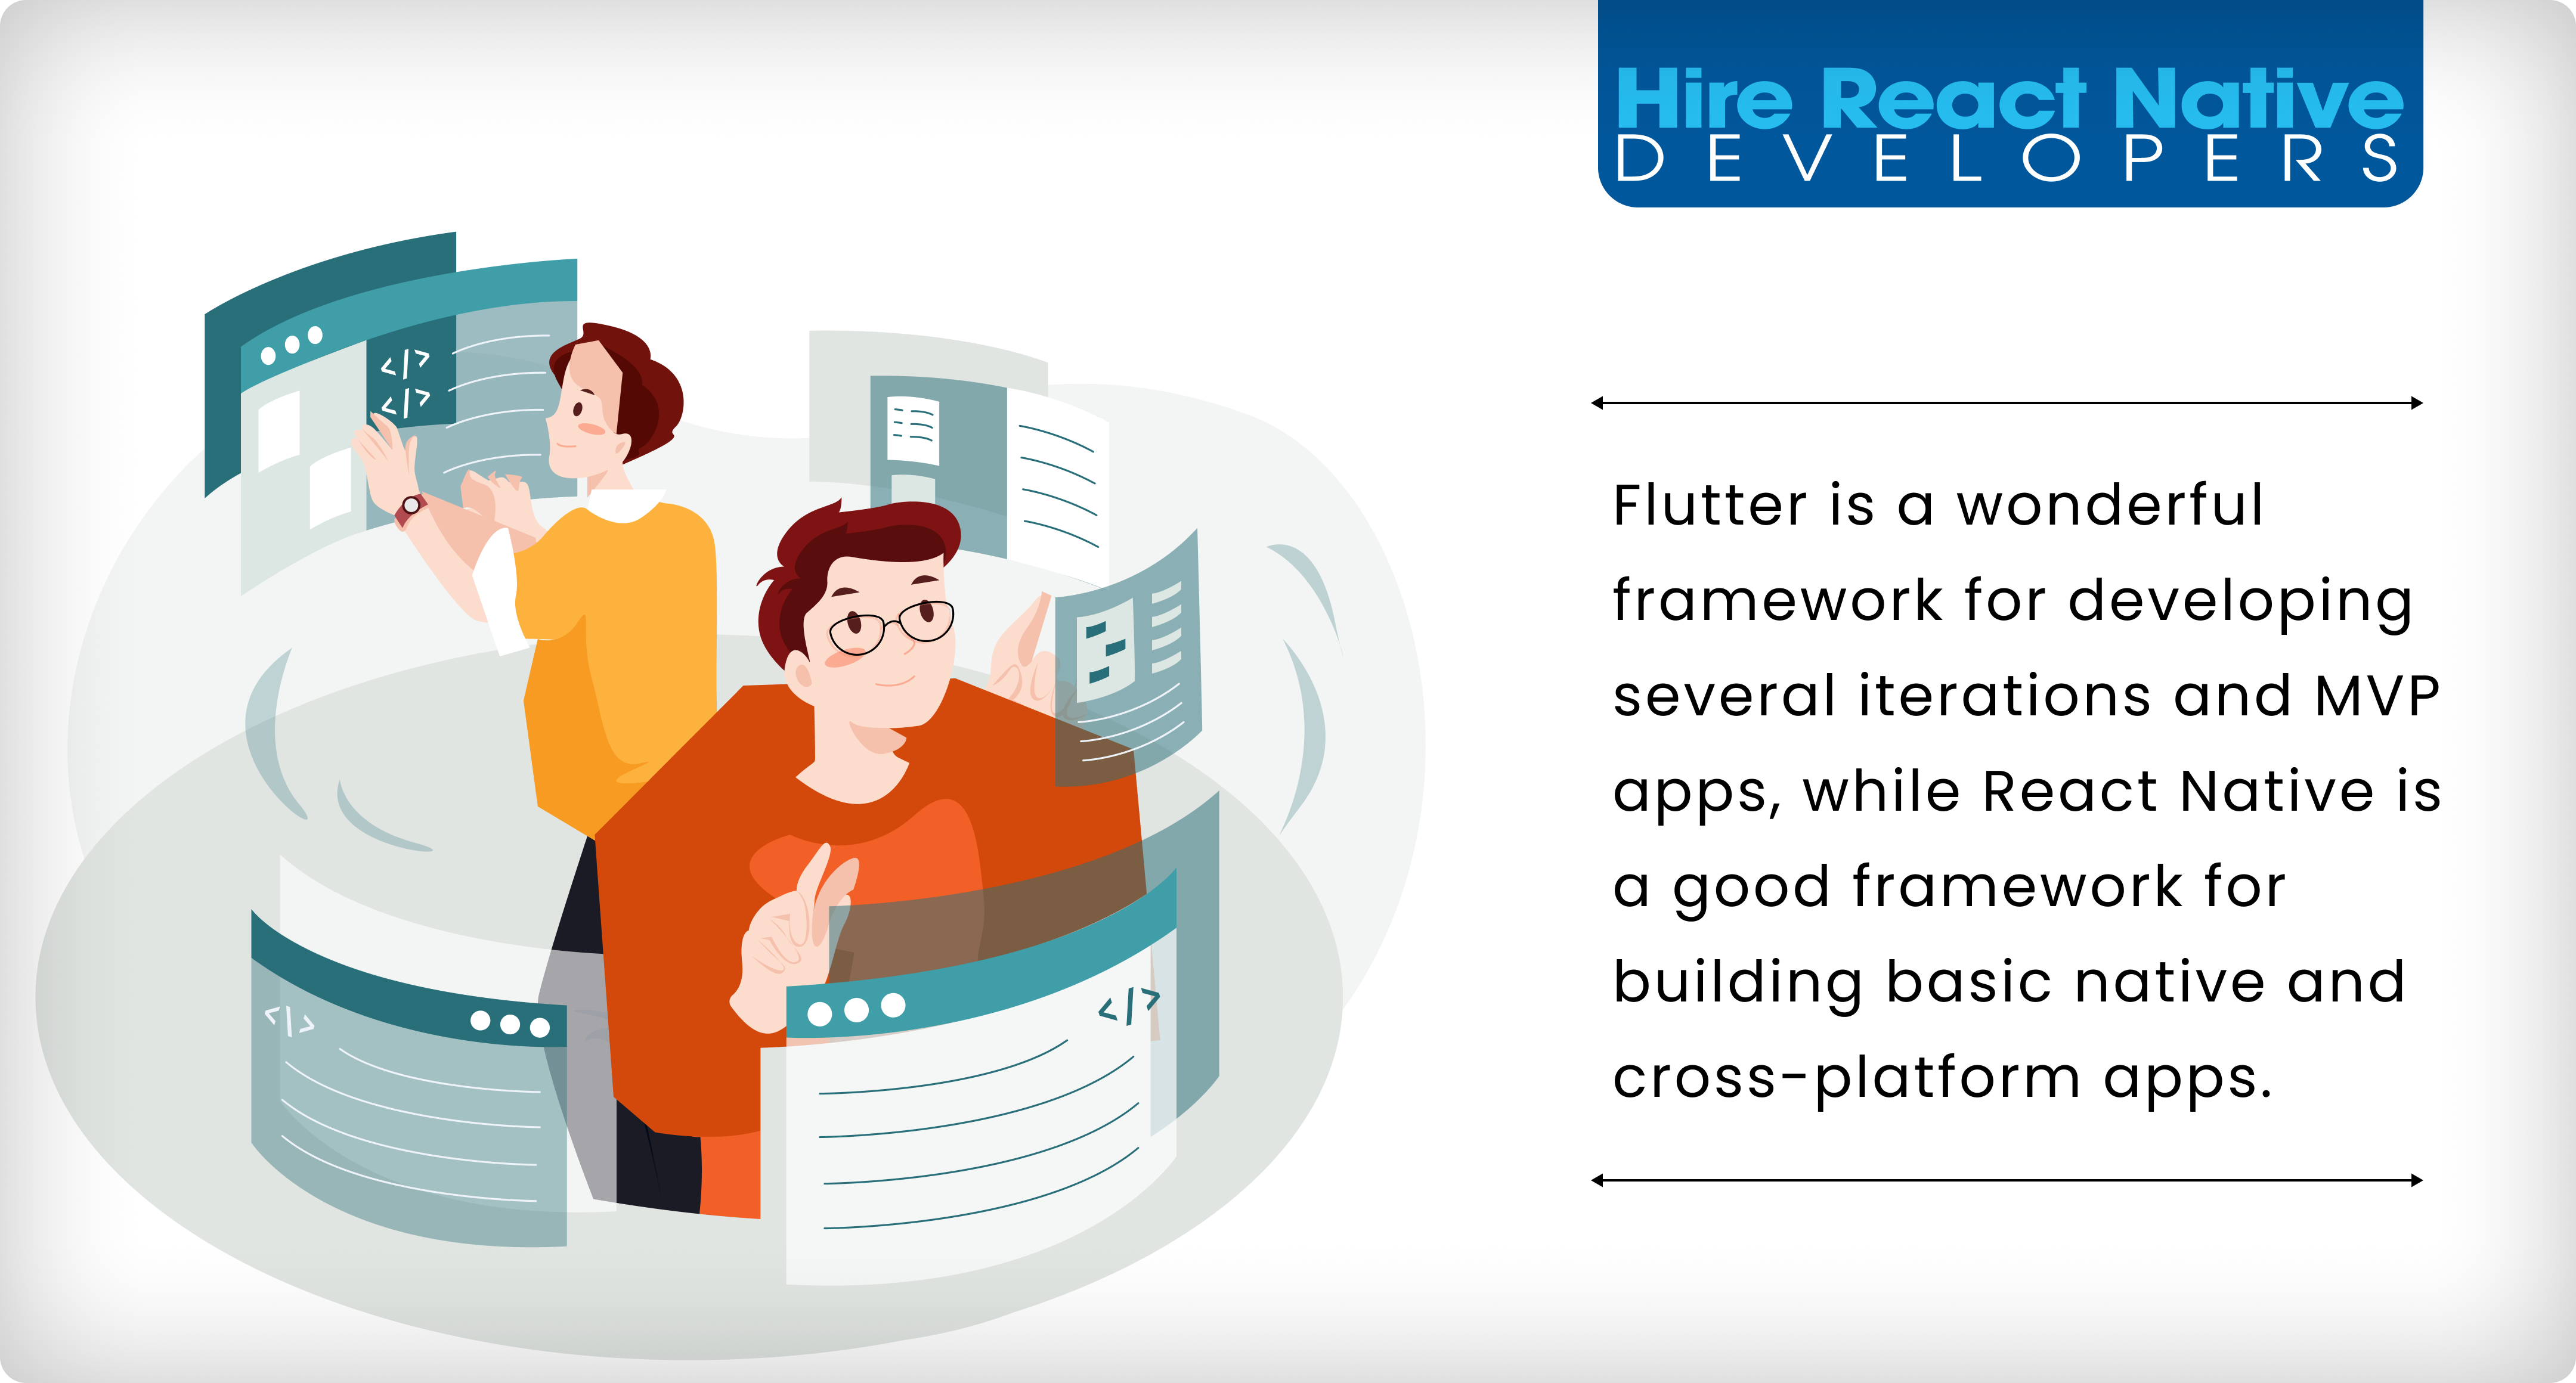 How easy is it for developers to pick up Flutter?